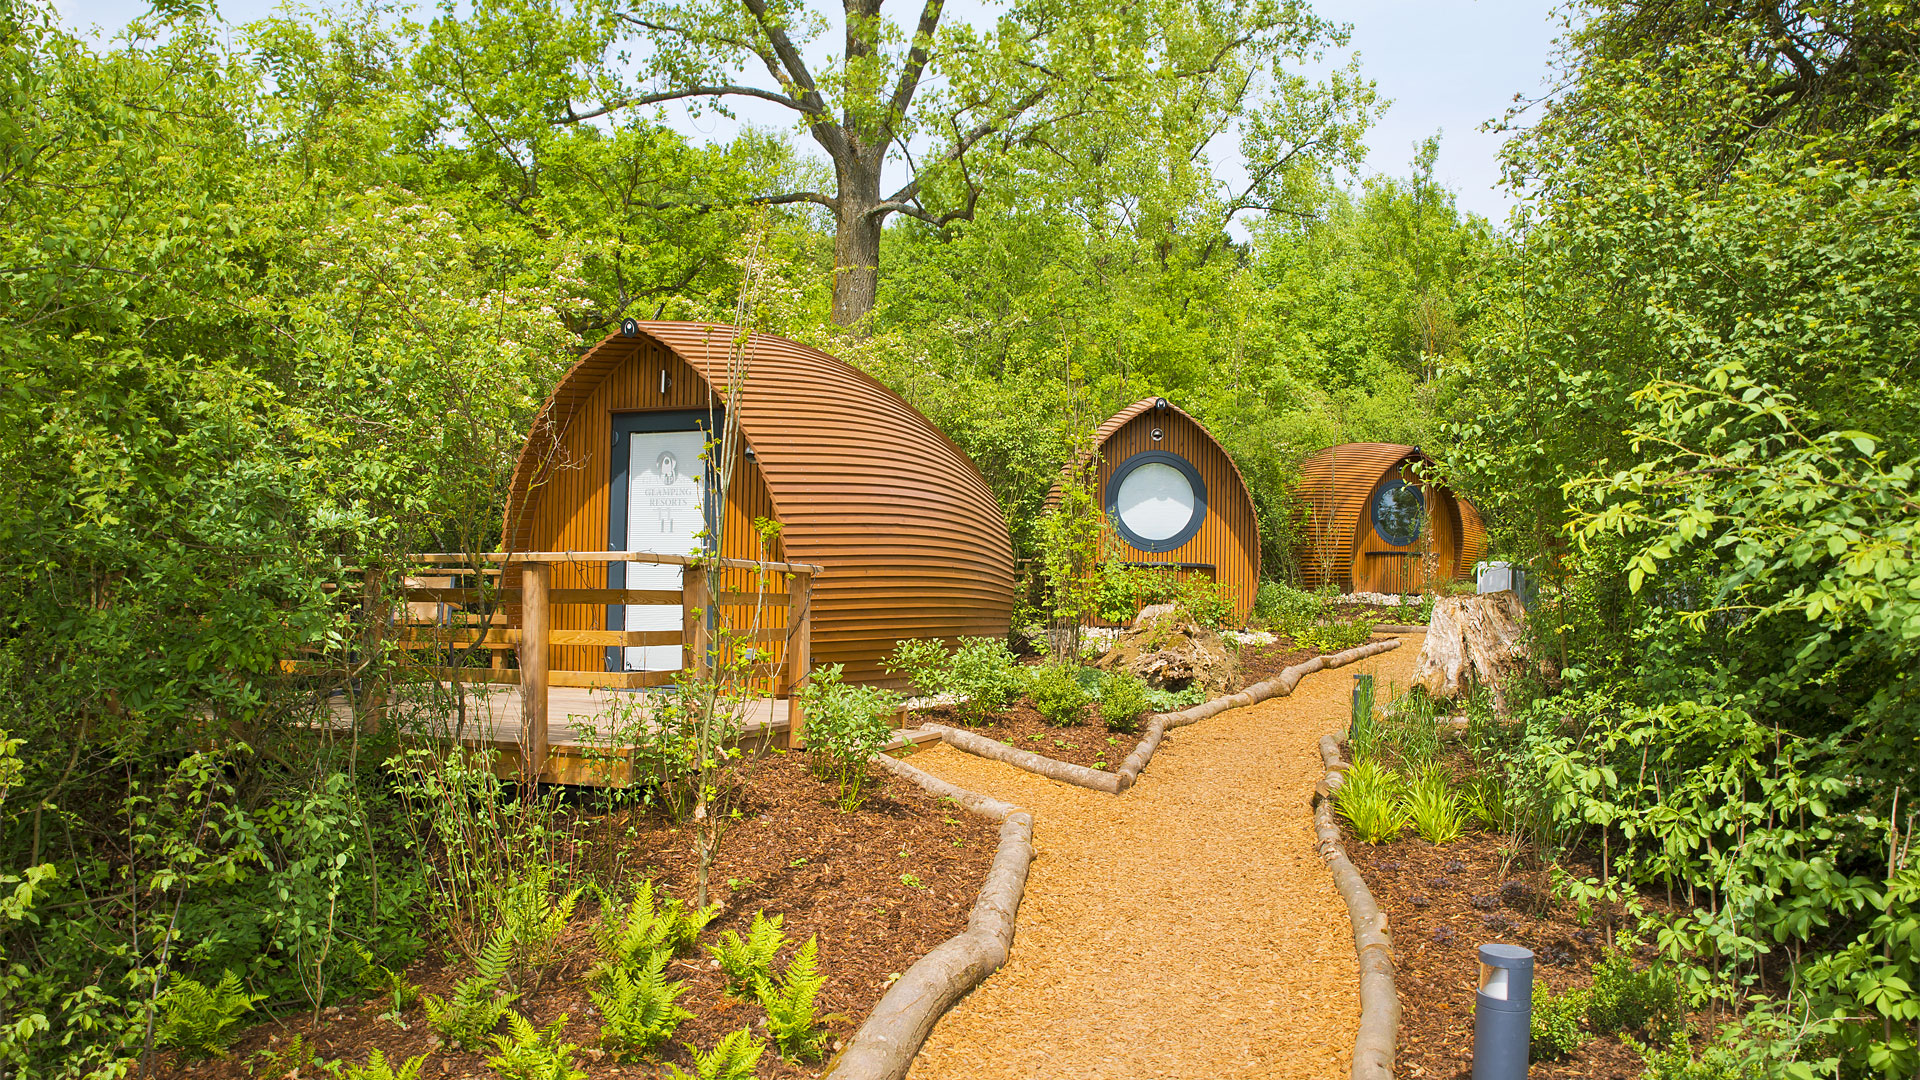 Bienvenue au Glamping Resort